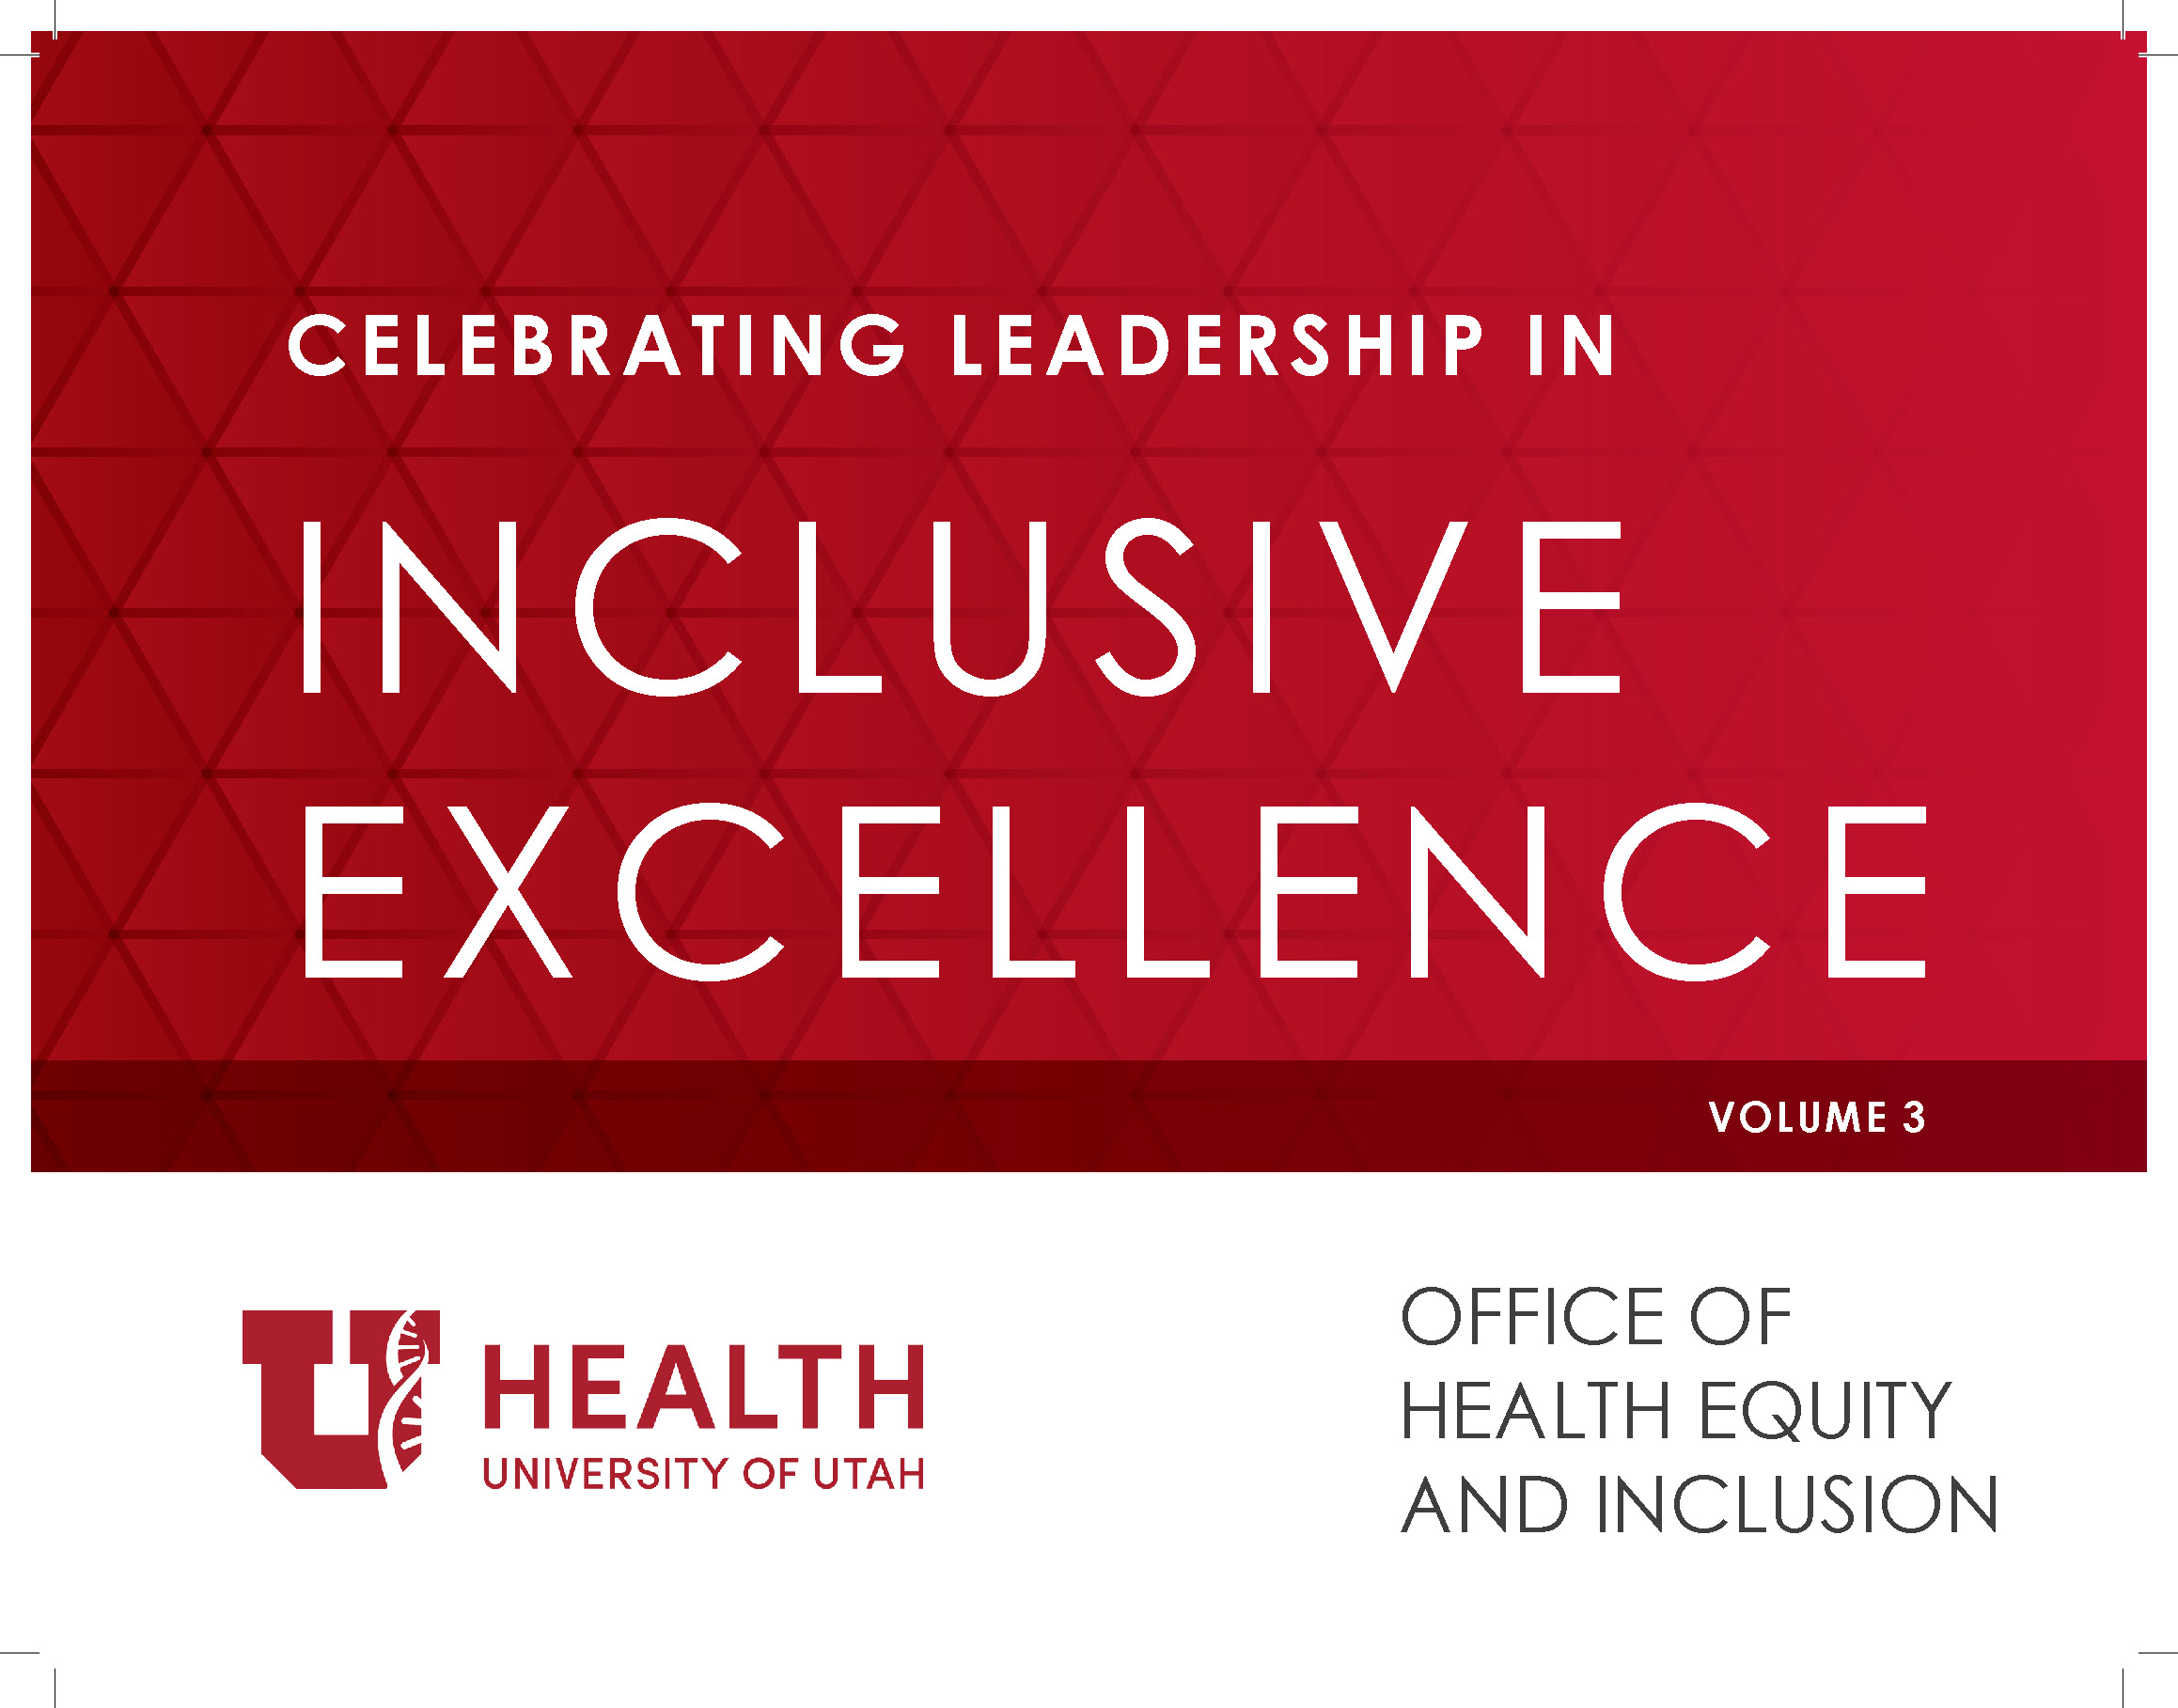 Inclusive Excellence Awards